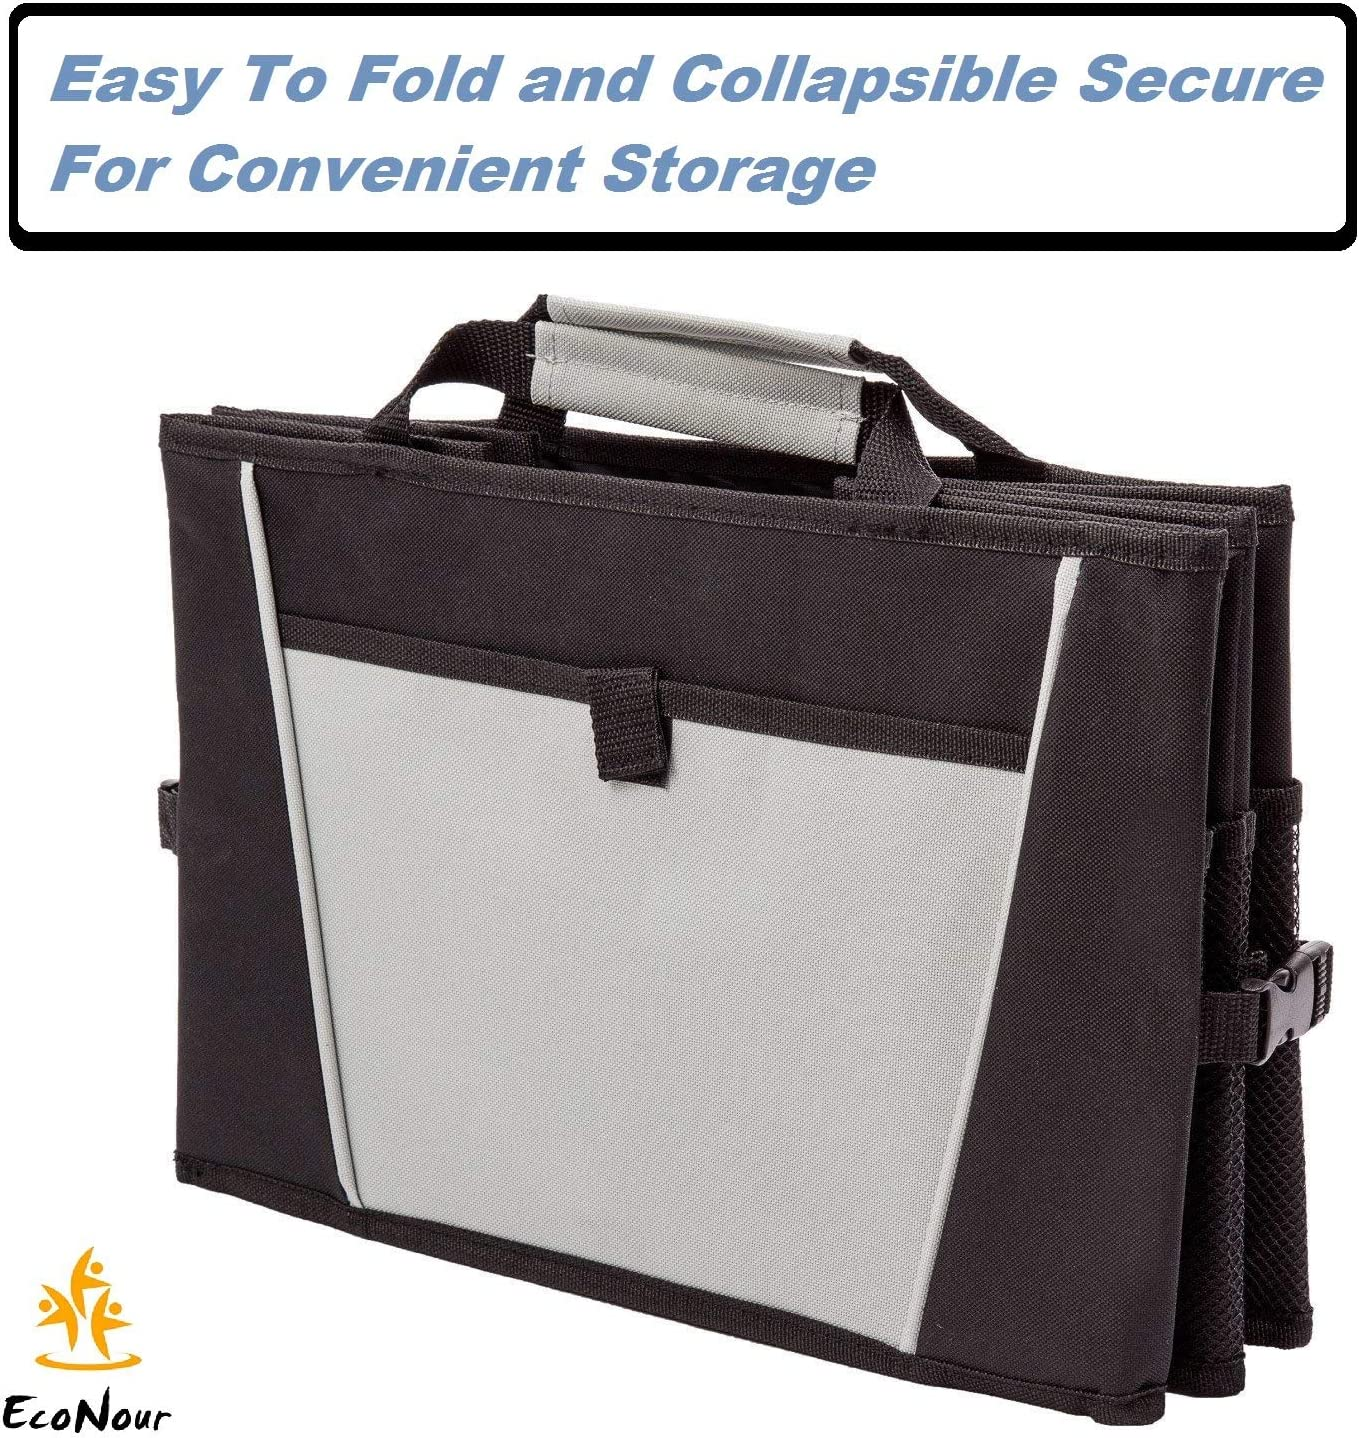 Portable Cargo Carrier Caddy for Car Truck SUV Van EcoNour Auto Trunk Storage Organizer Collapsible Storage Container Bin with Pockets 21 x 15 x 10 Folding Bag